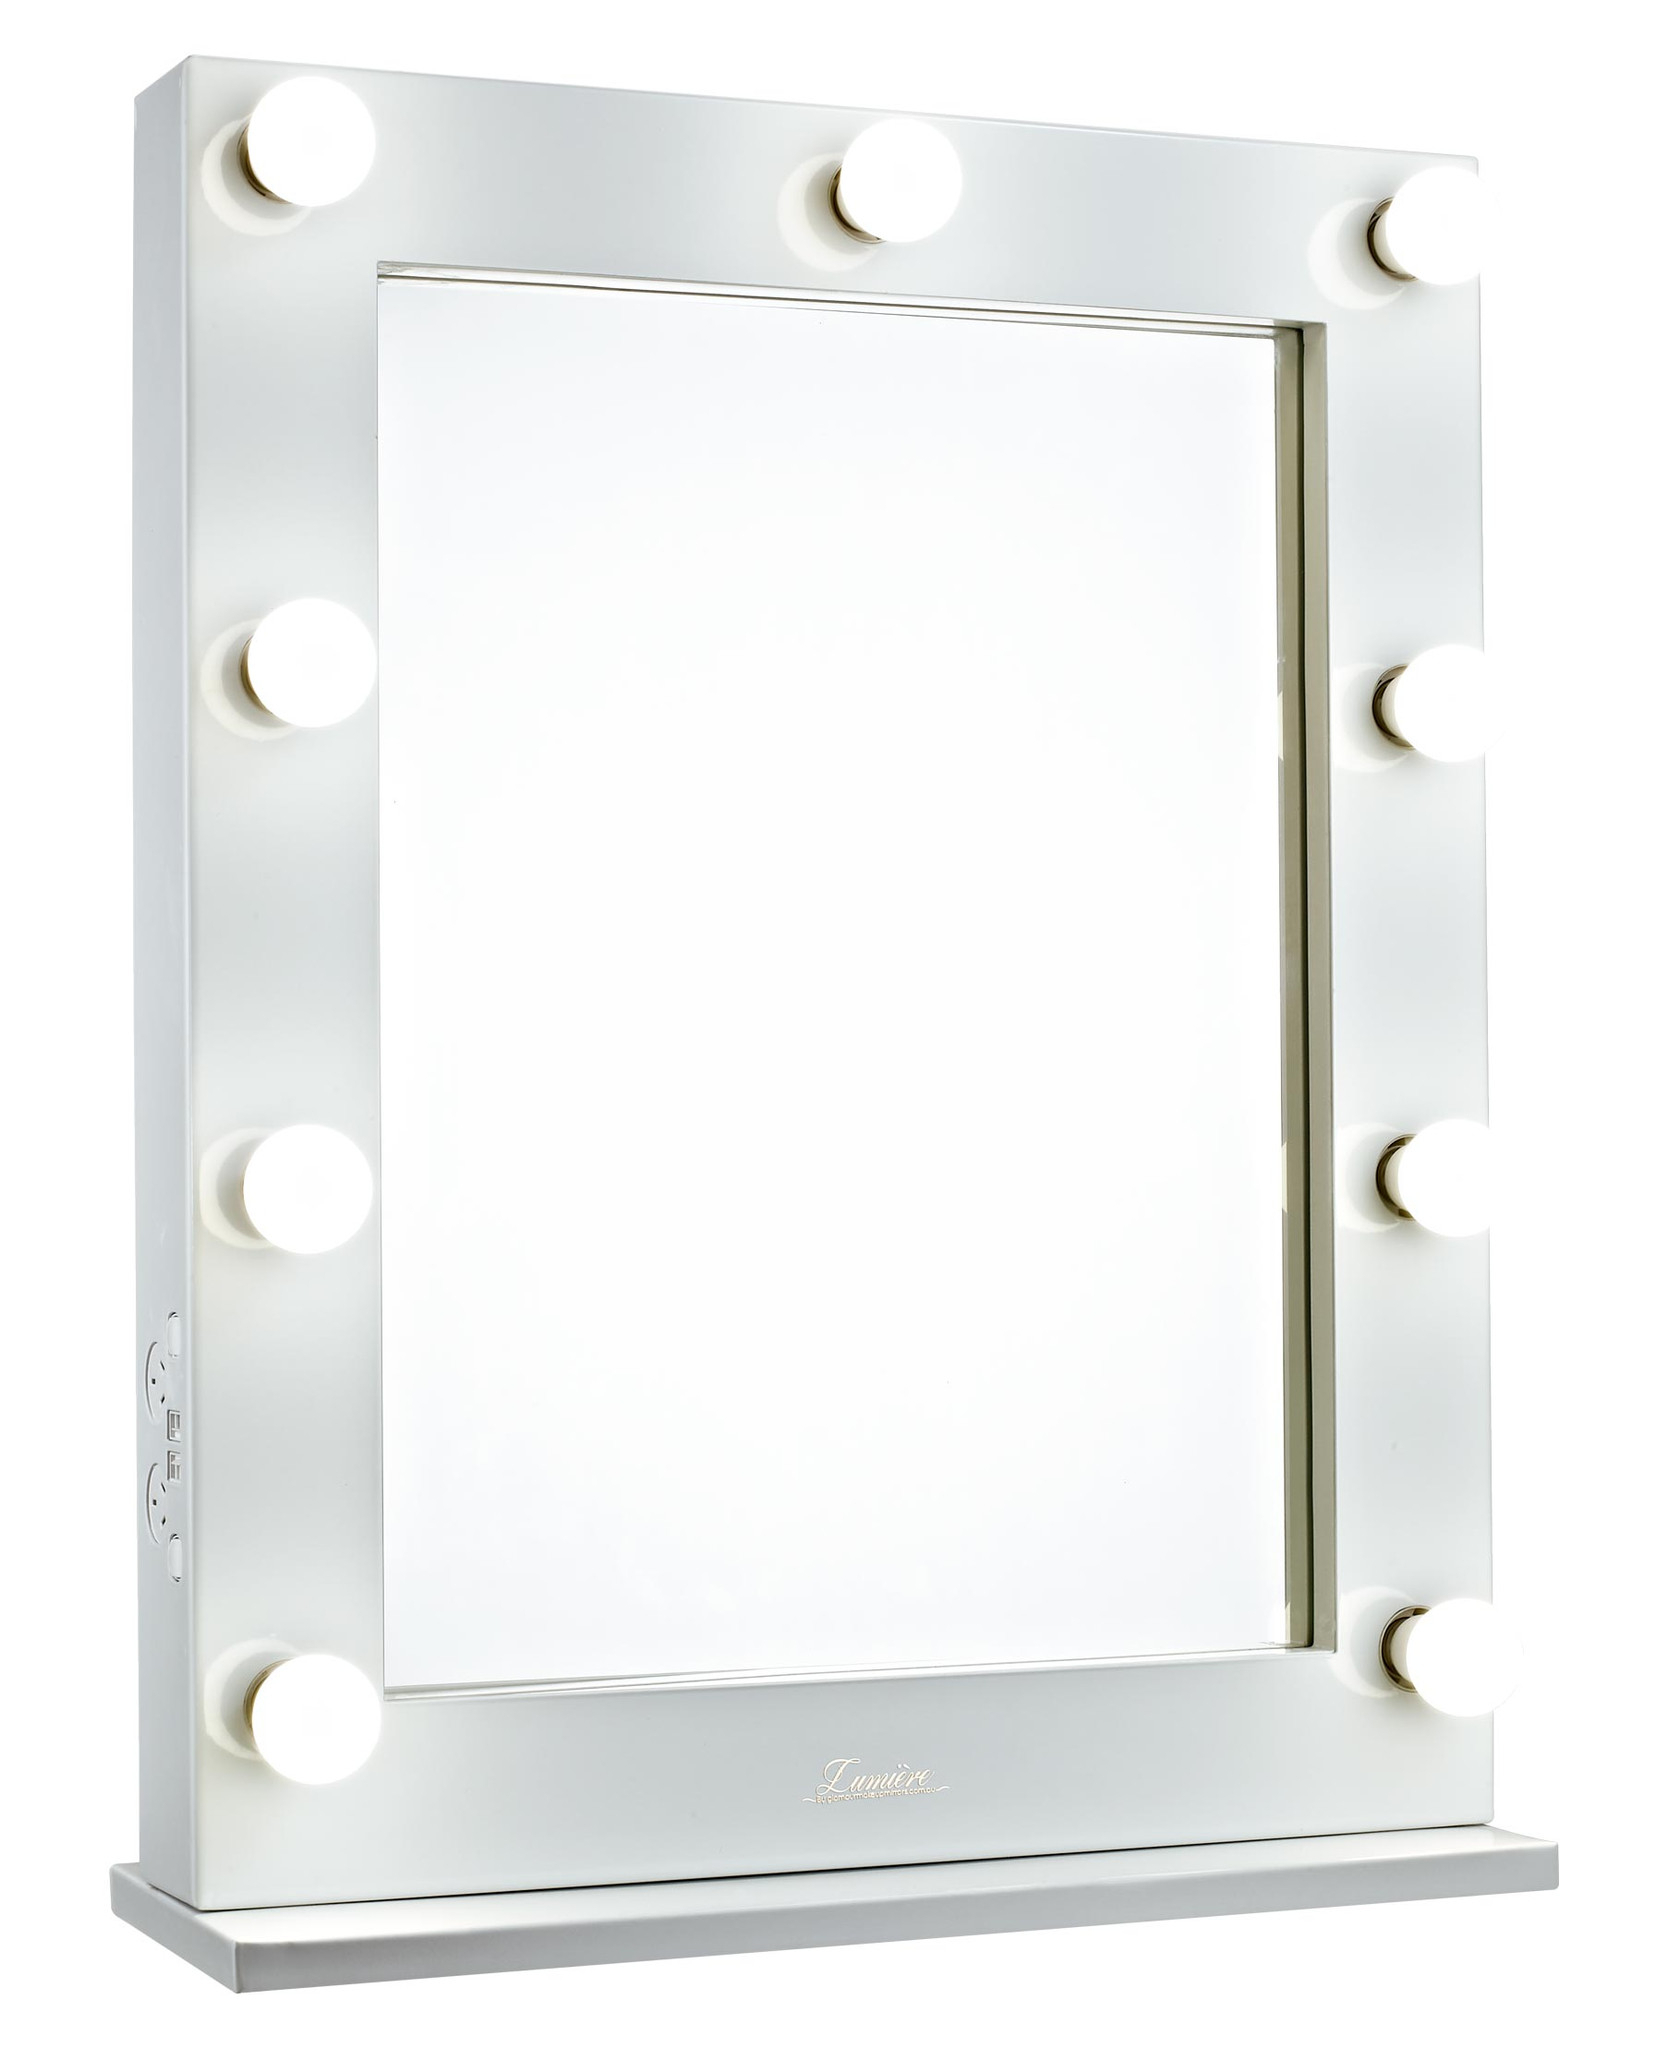 Hollywood Glamour Mirror | Hollywood Vanity Mirror with Lights | Broadway Lighted Vanity Desk